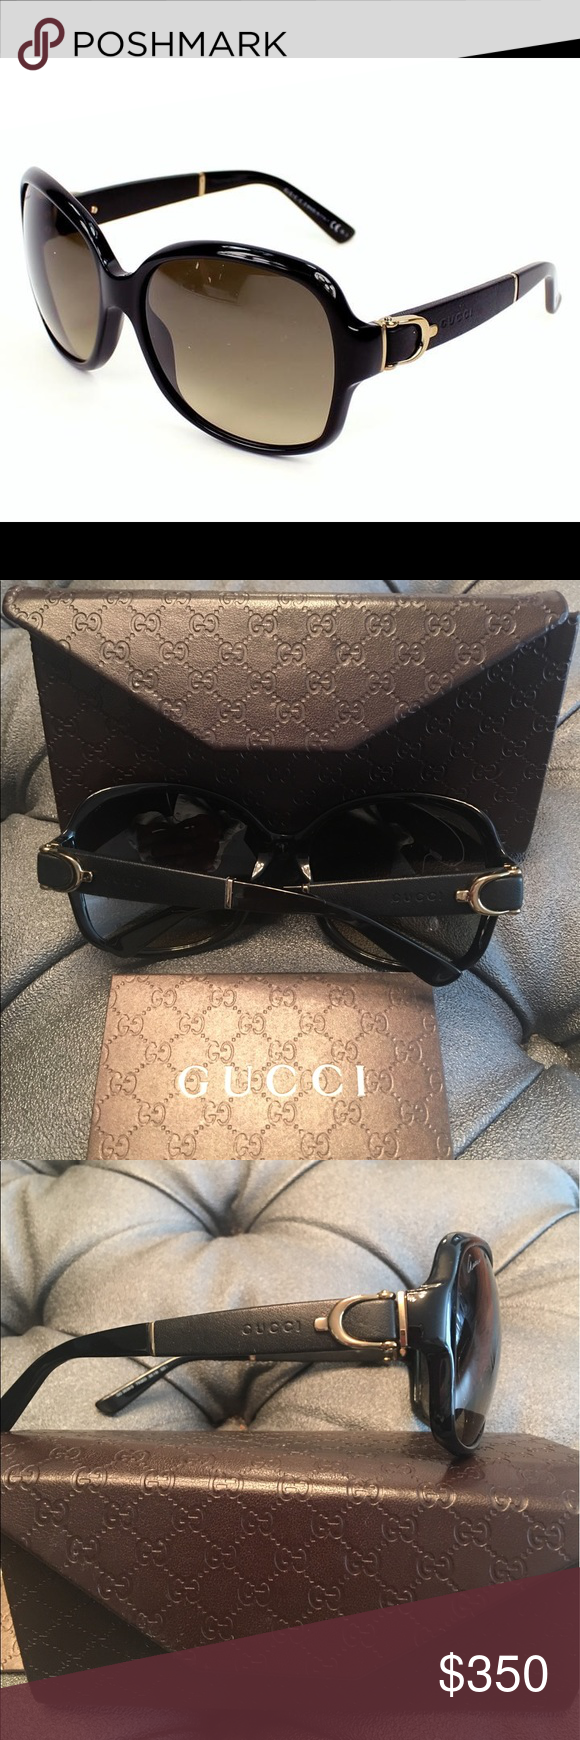 bca9752c1d5 Gucci leather buckle NWOT sunglasses NEW Gucci GG 3638 S Black Oversized Buckle  Leather Sunglasses Size 58-16-125 Comes with Gucci case